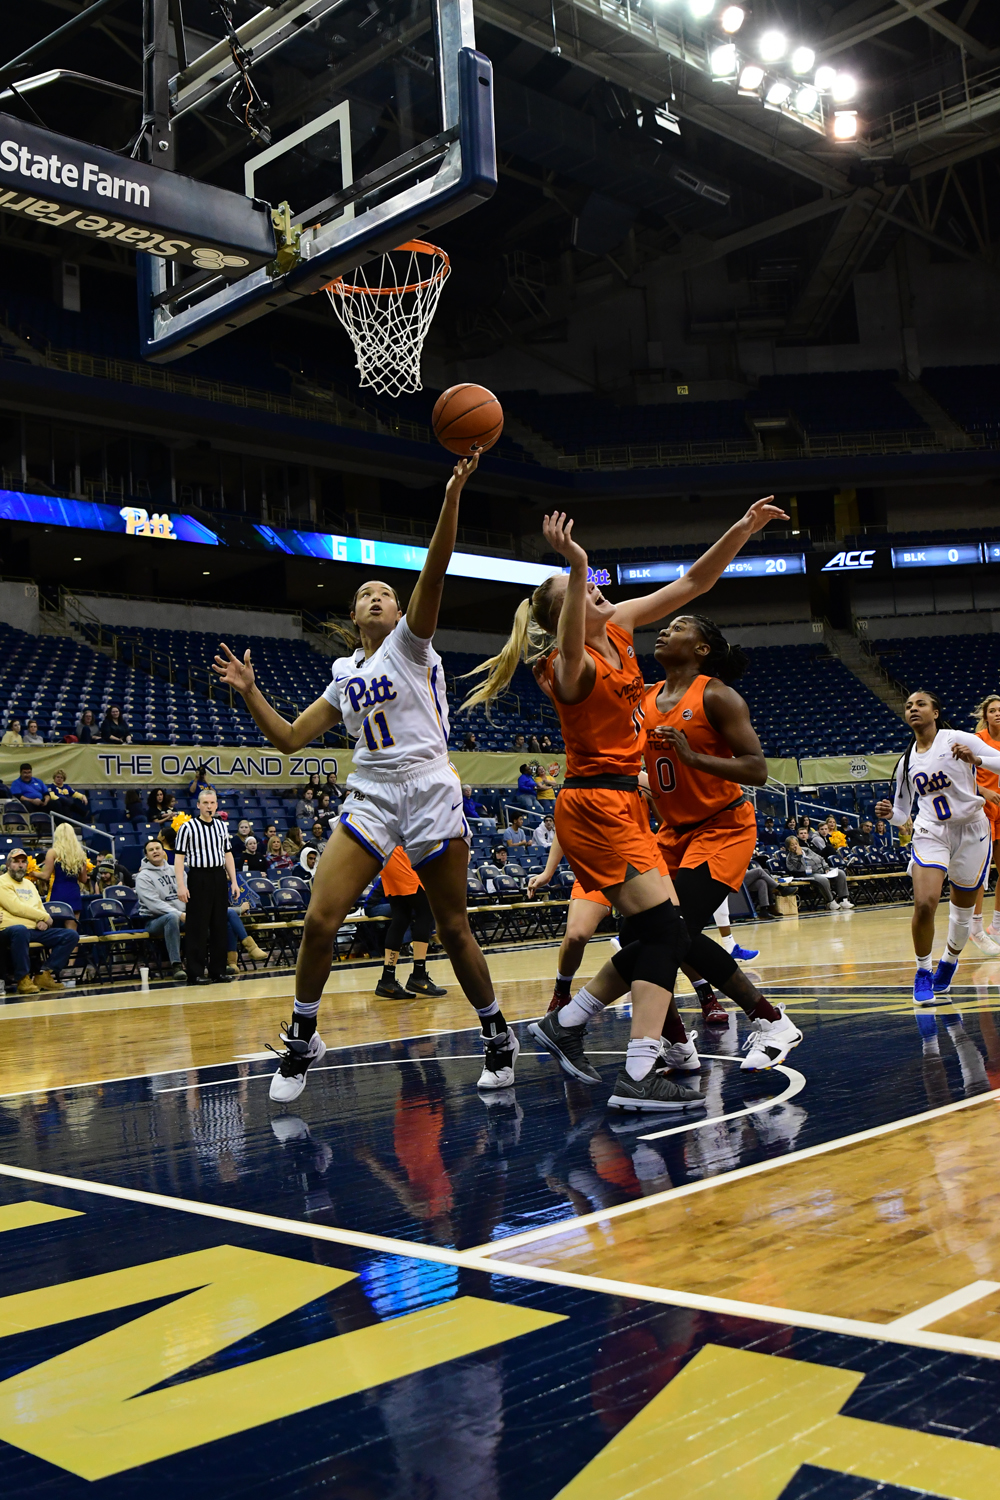 Sophomore center Cara Judkins (11) attempts a layup during Pitt's Jan. 31 loss against Virginia Tech. Yesterday's loss against Duke marked Pitt's ninth straight loss this season.